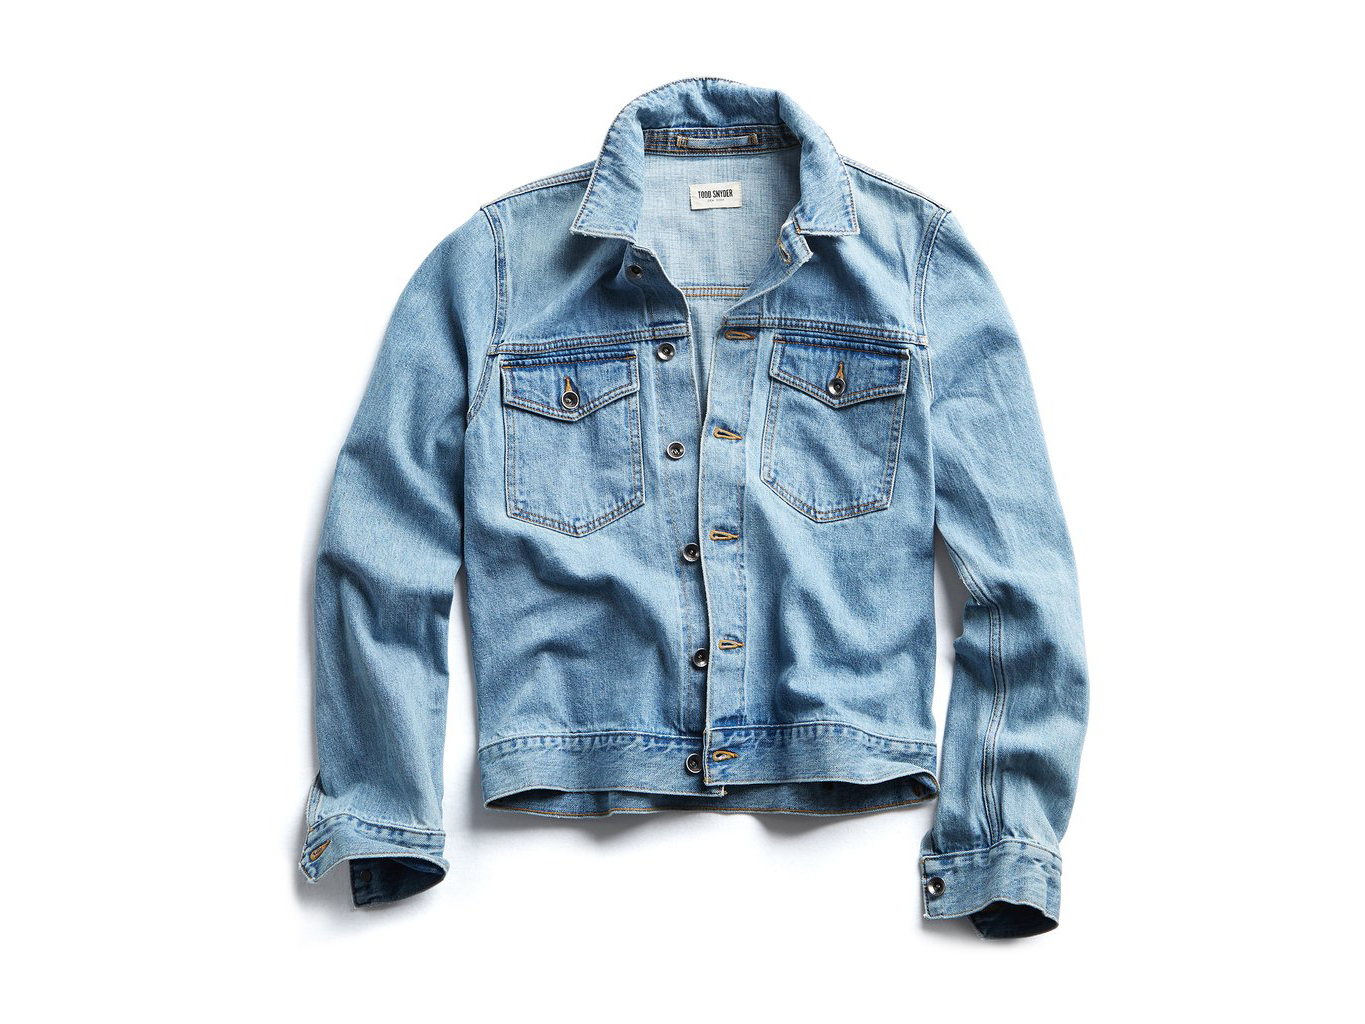 Todd Snyder Denim Jacket